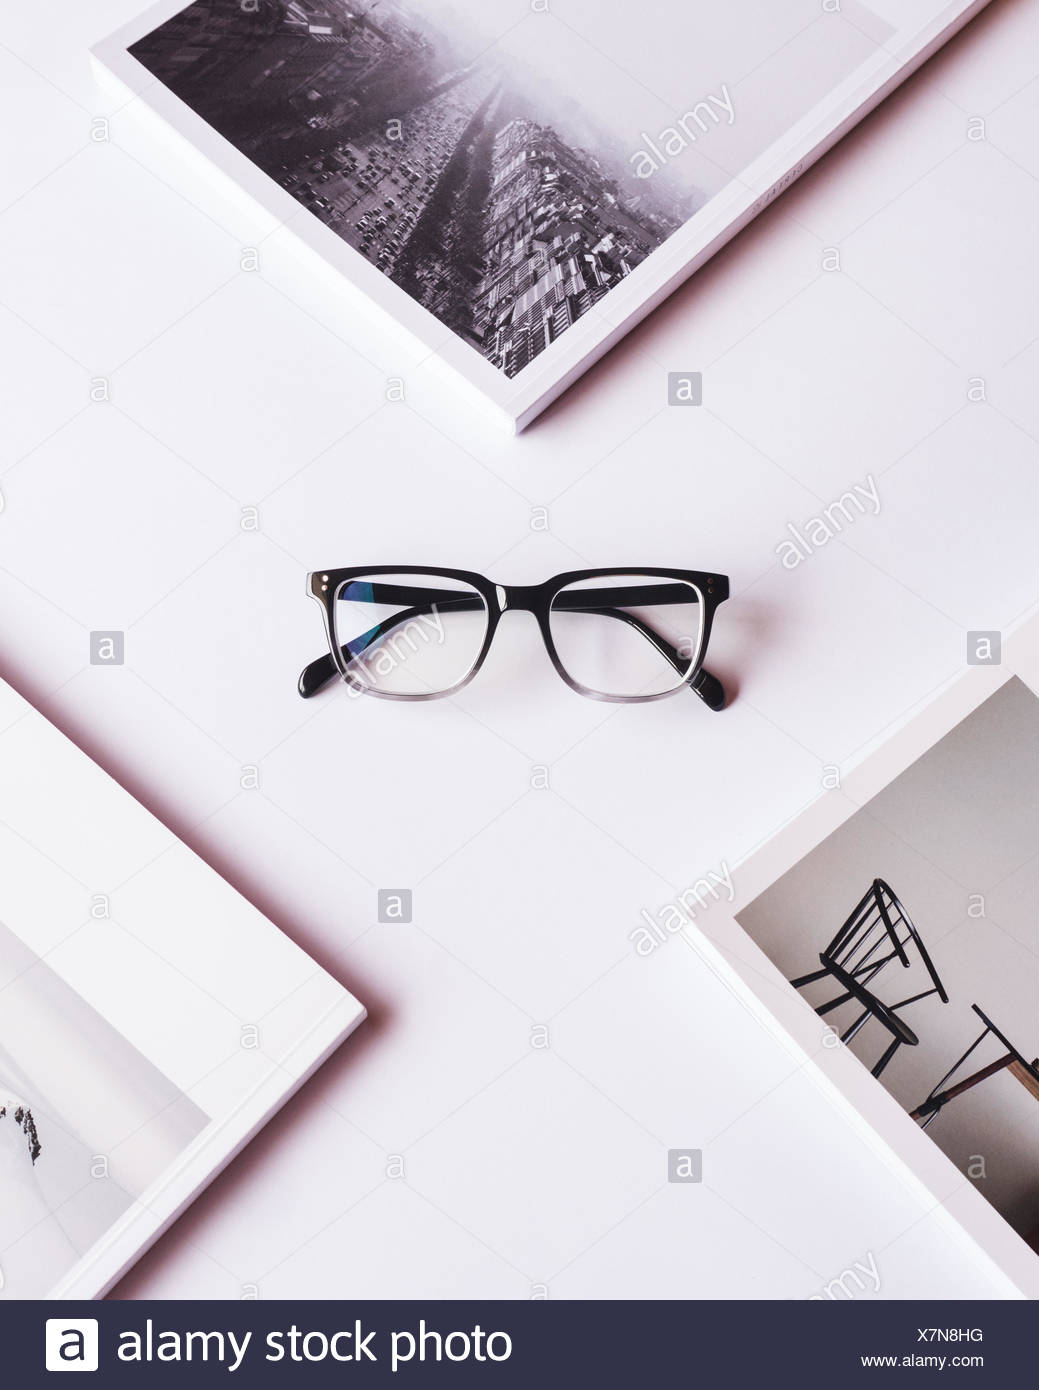 High Angle View Of Eyeglasses With Photographs On Table - Stock Image